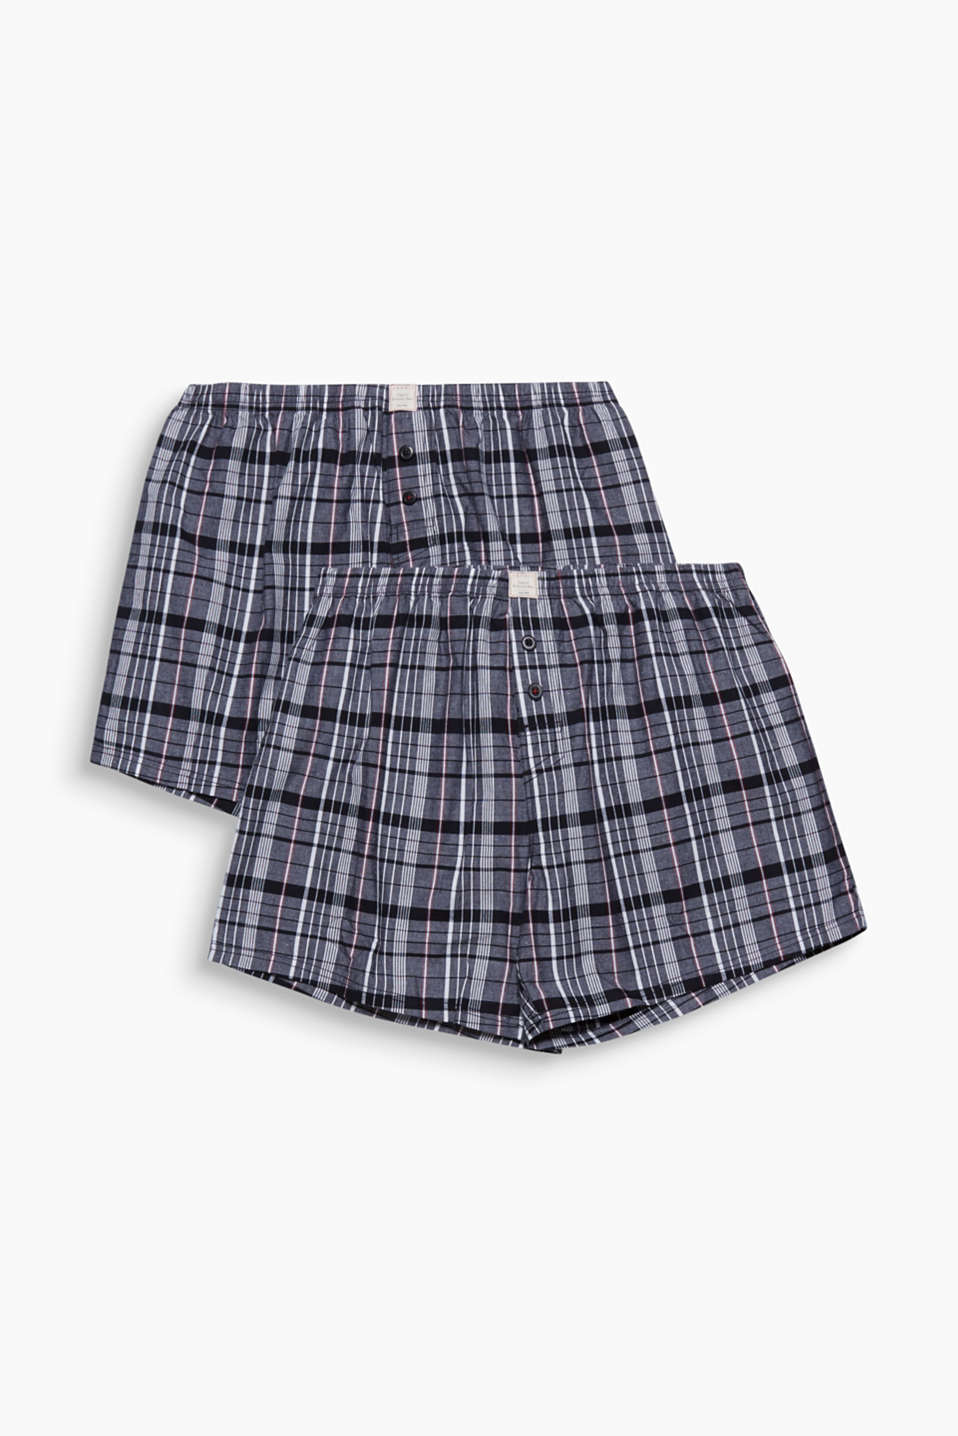 These smooth woven cotton shorts with a stylish check pattern are casual and comfortable.